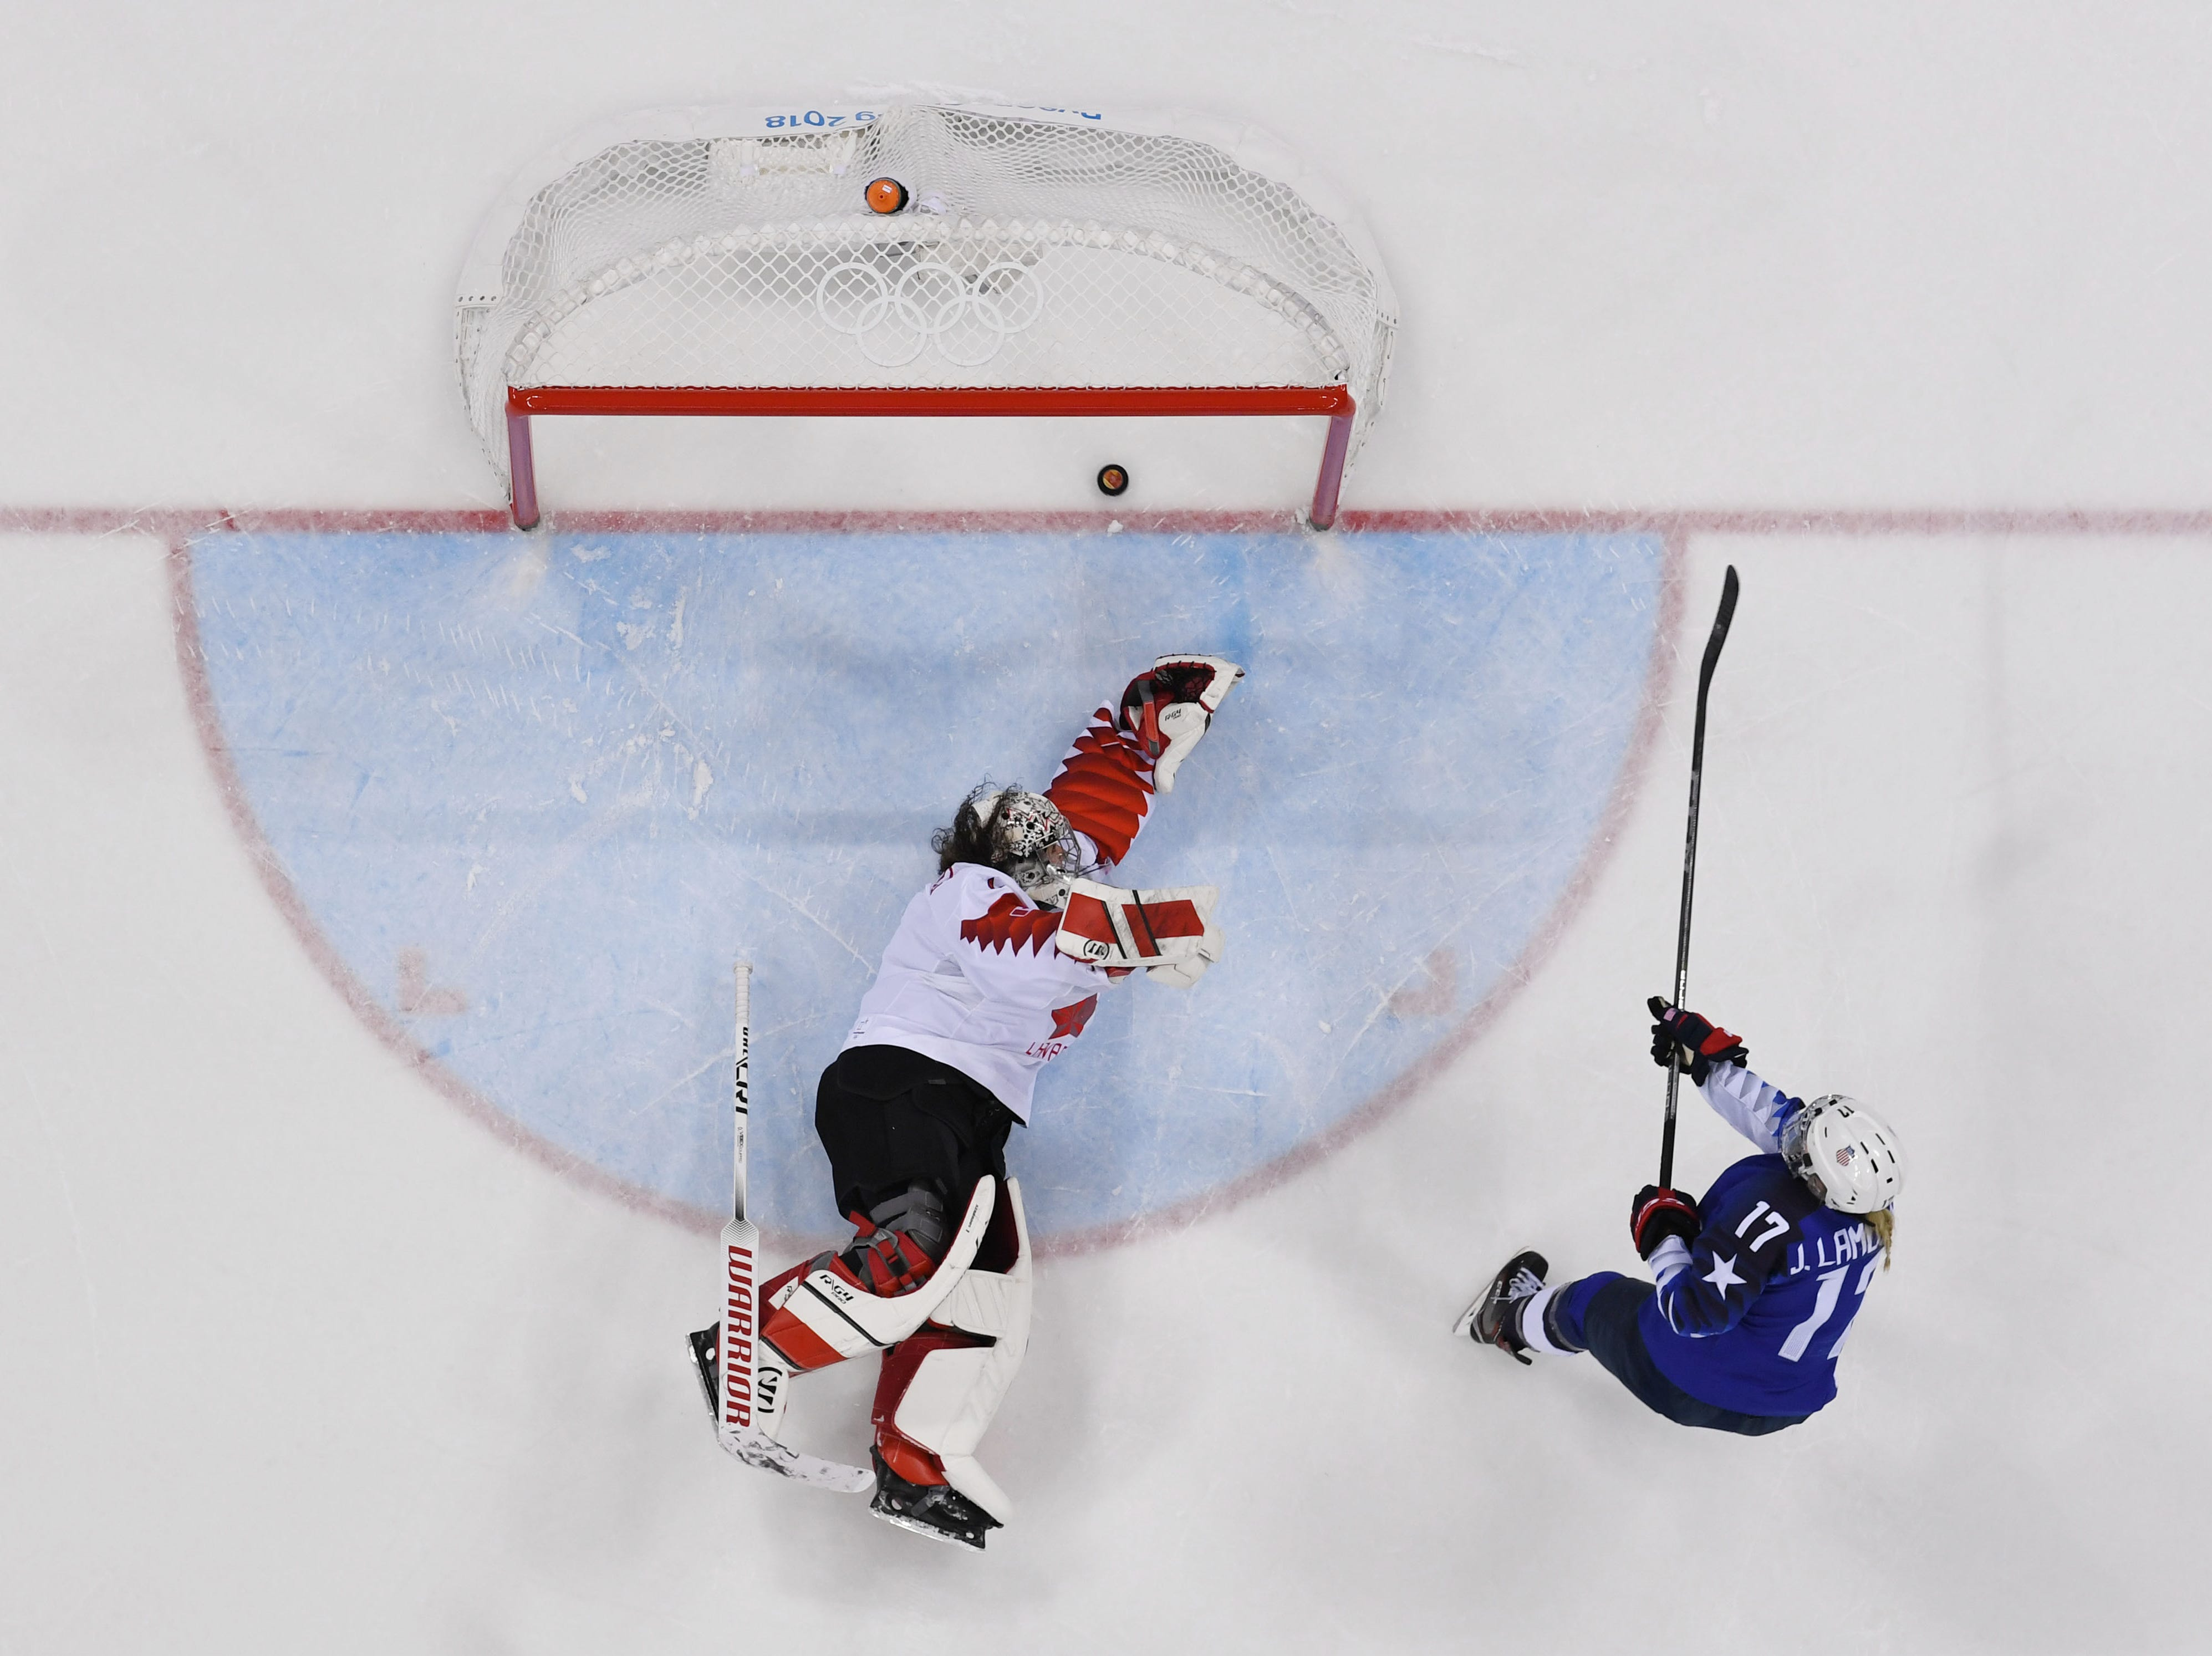 Feb. 22: United States forward Jocelyne Lamoureux (17) scores what would be the shootout winner past Canada goaltender Shannon Szabados (1) during the women's ice hockey gold medal game.